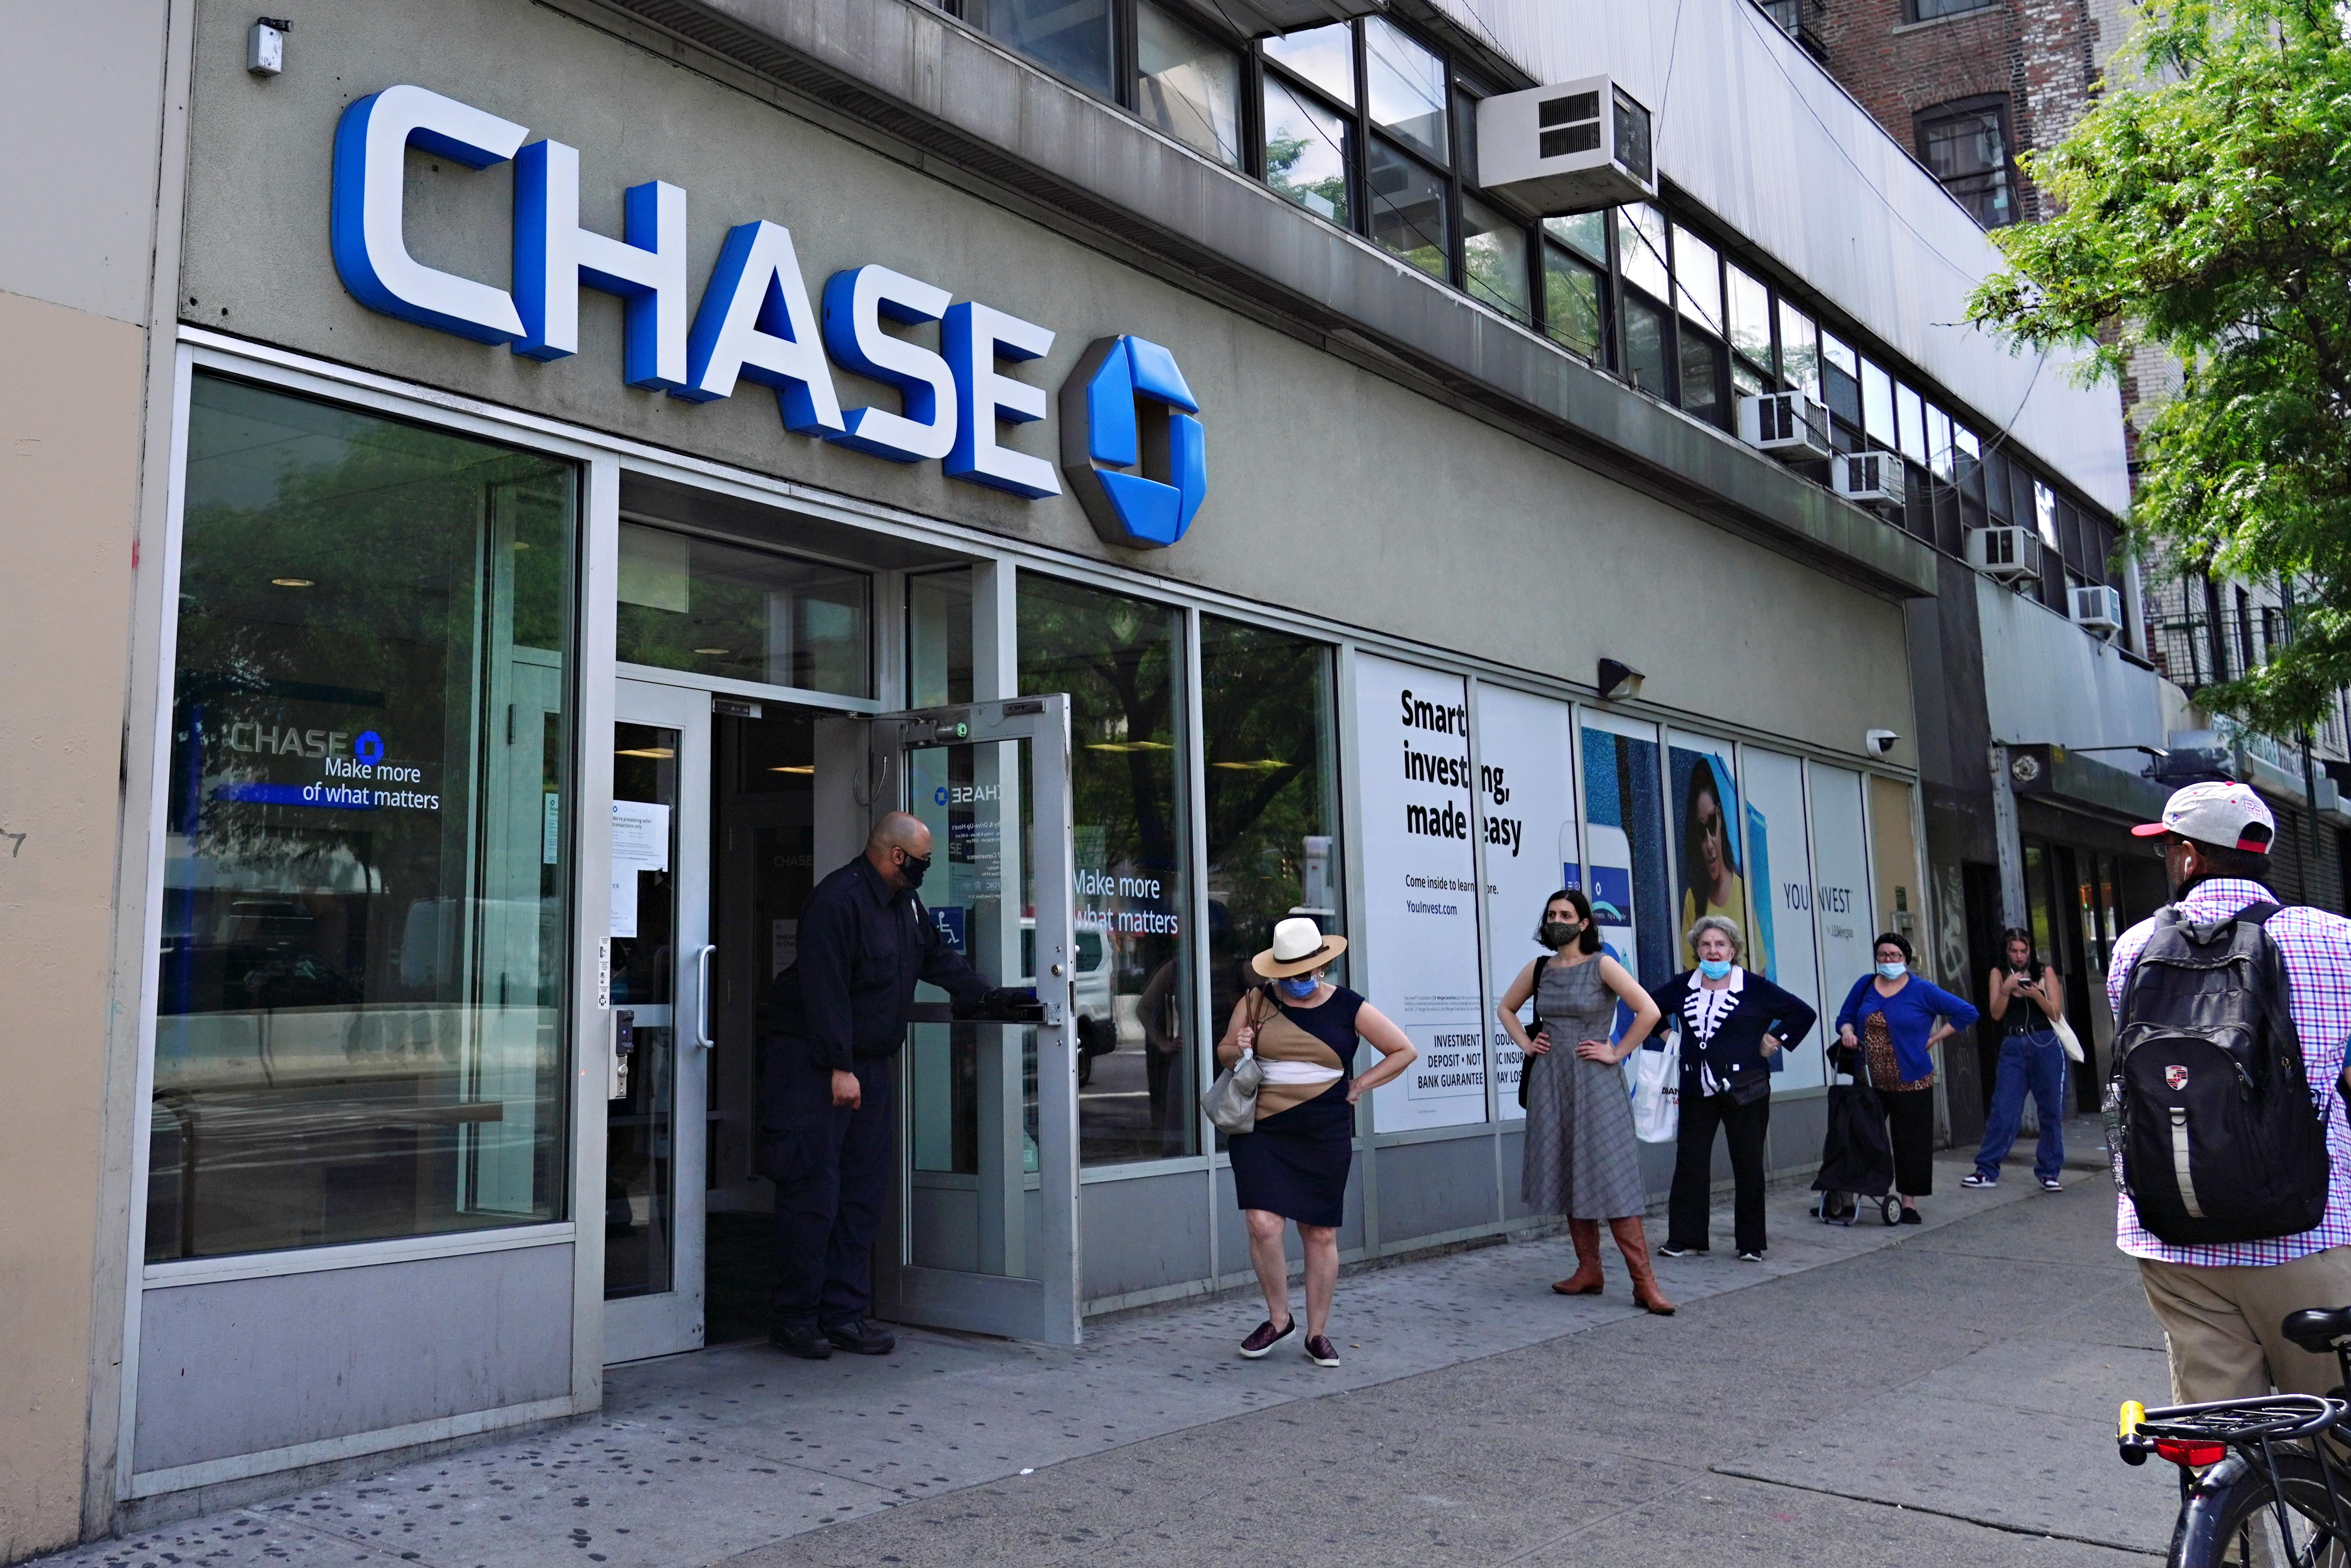 Overdraft fees have forced the poor out of banks: former FDIC chair